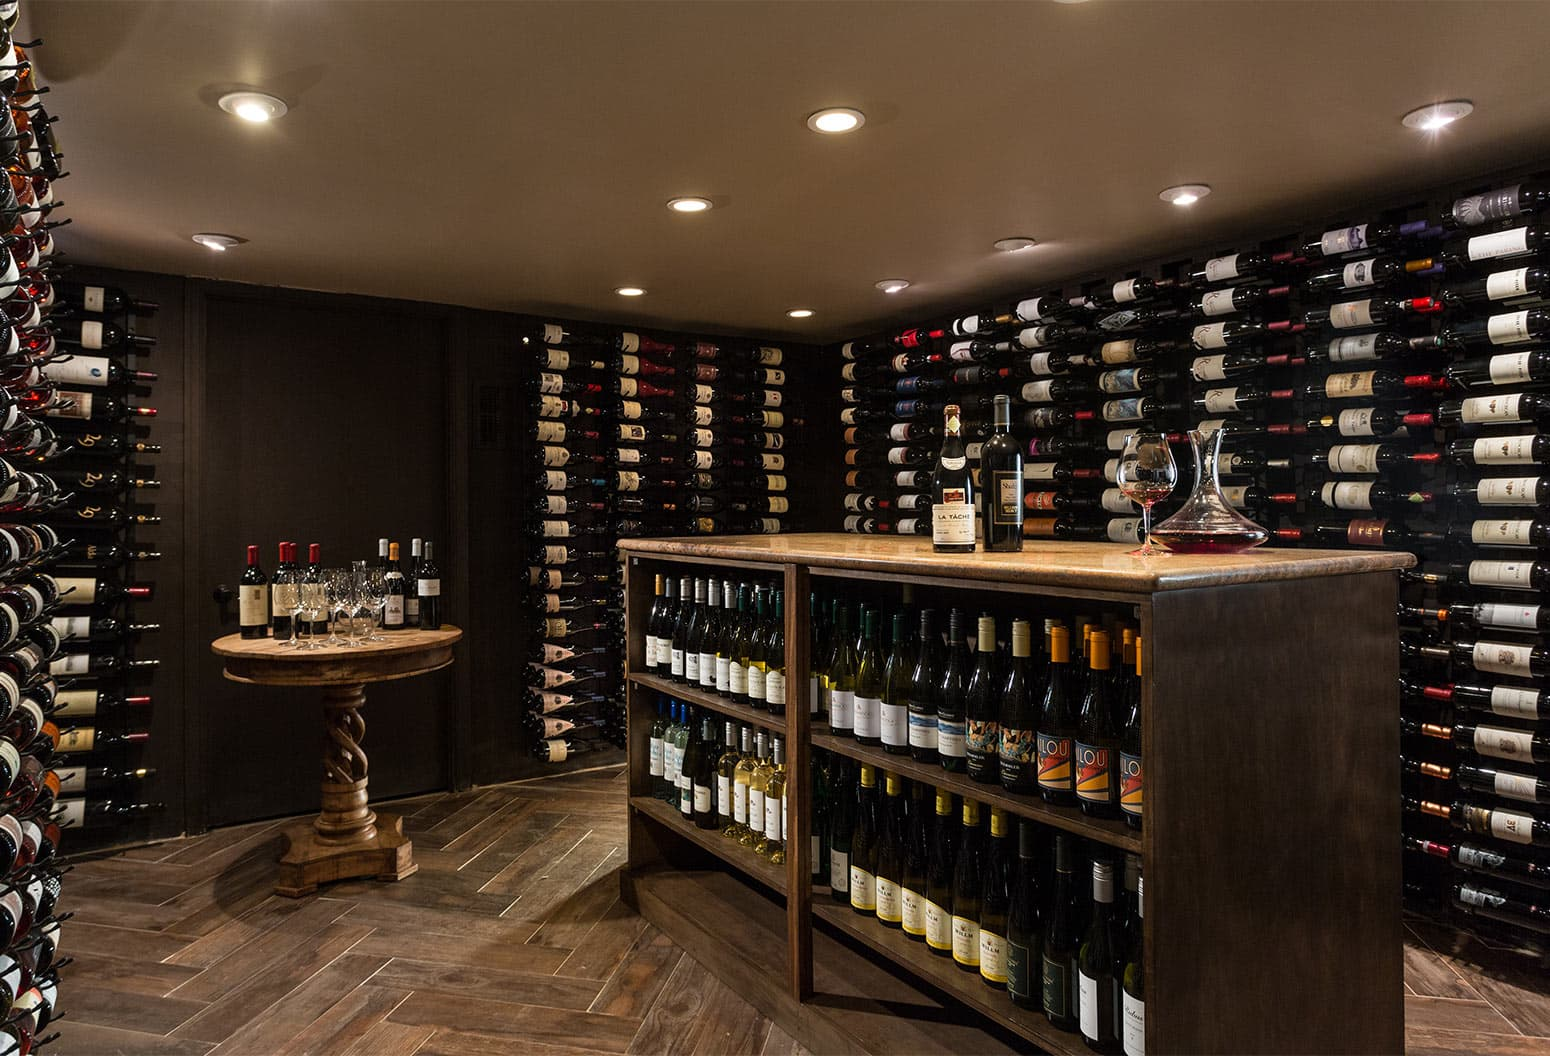 Wine Cellar full of wine